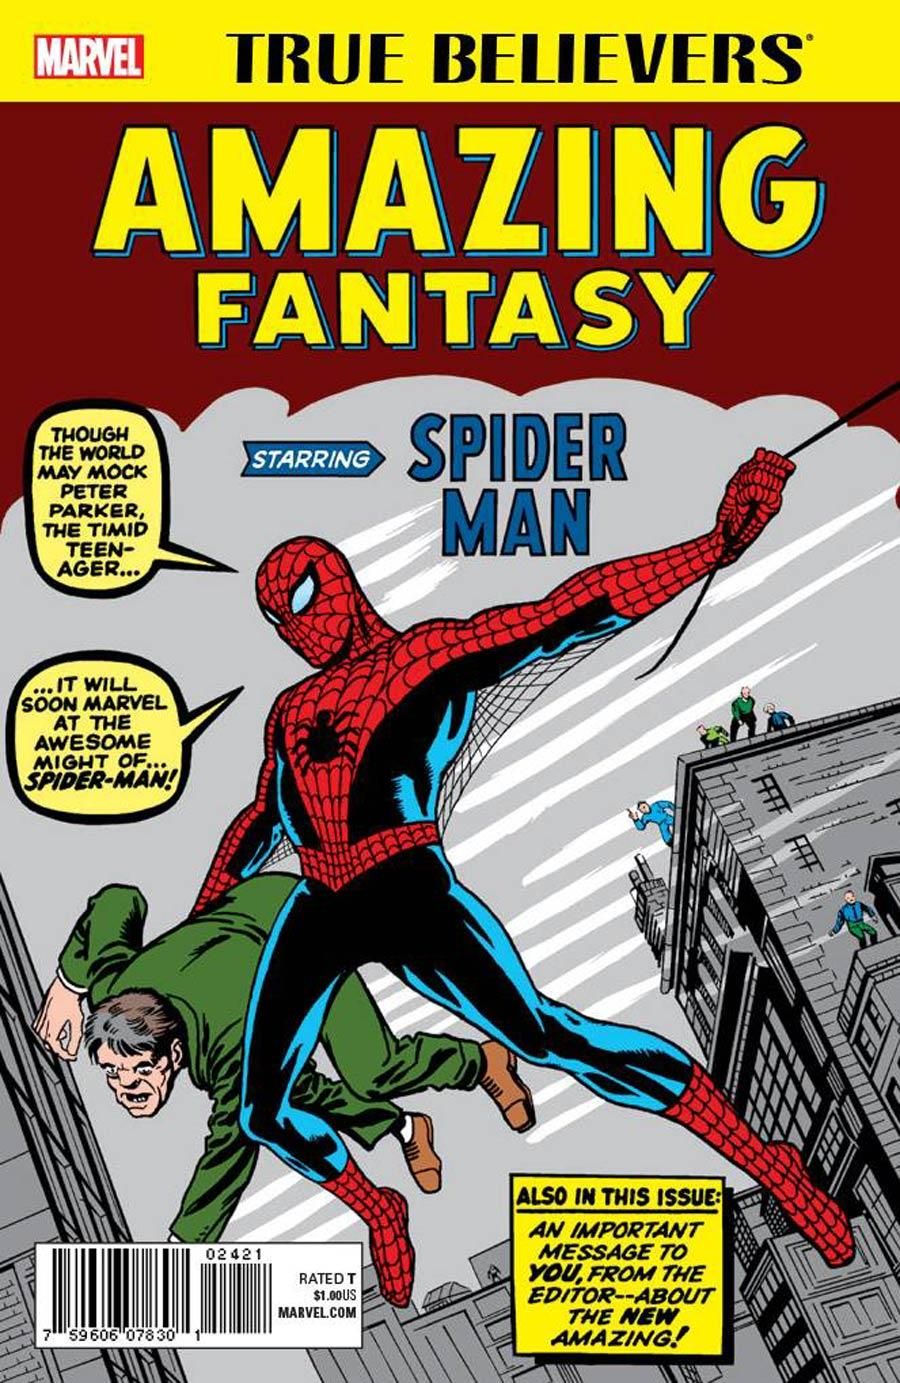 True Believers Amazing Fantasy Starring Spider-Man Vol. 1 #1